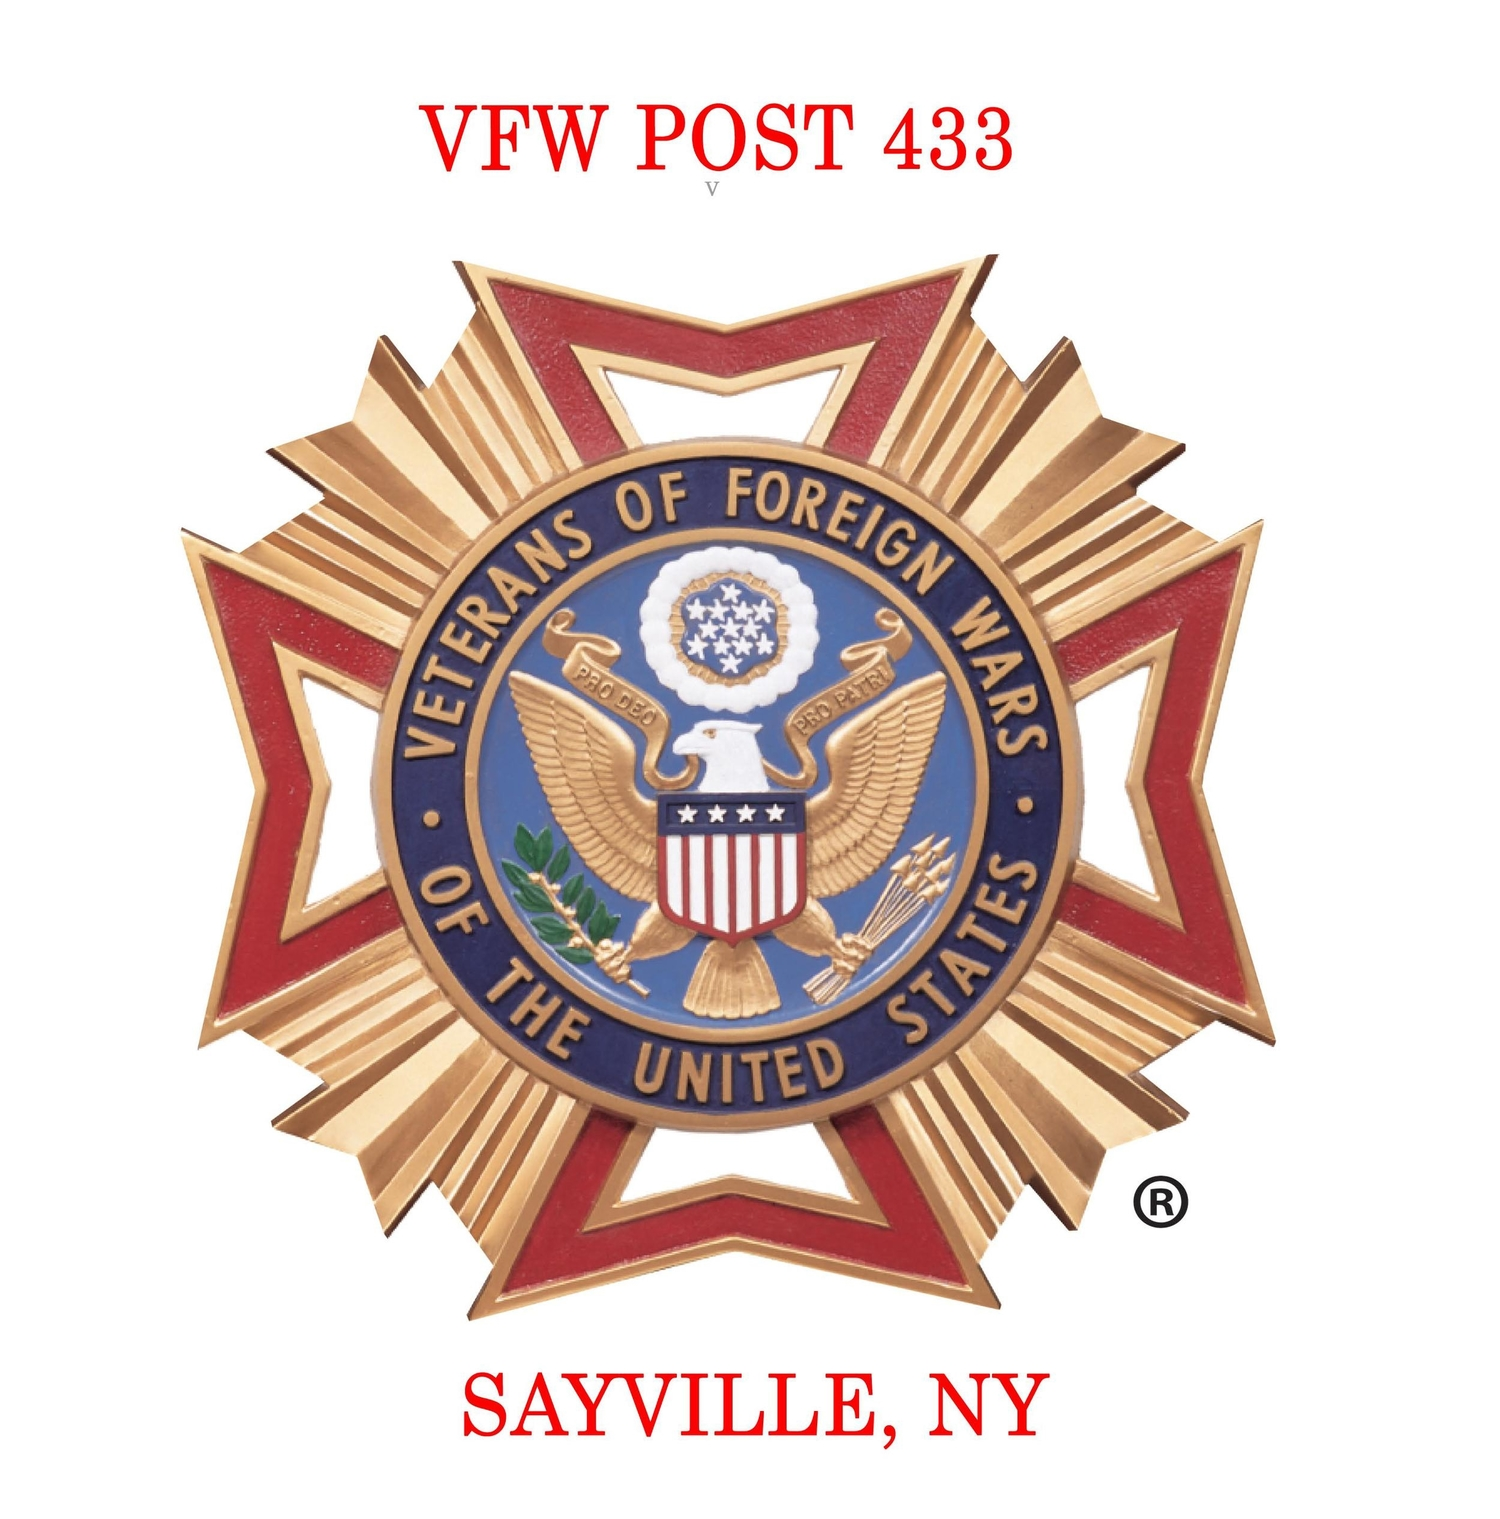 Sayville VFW Post 433